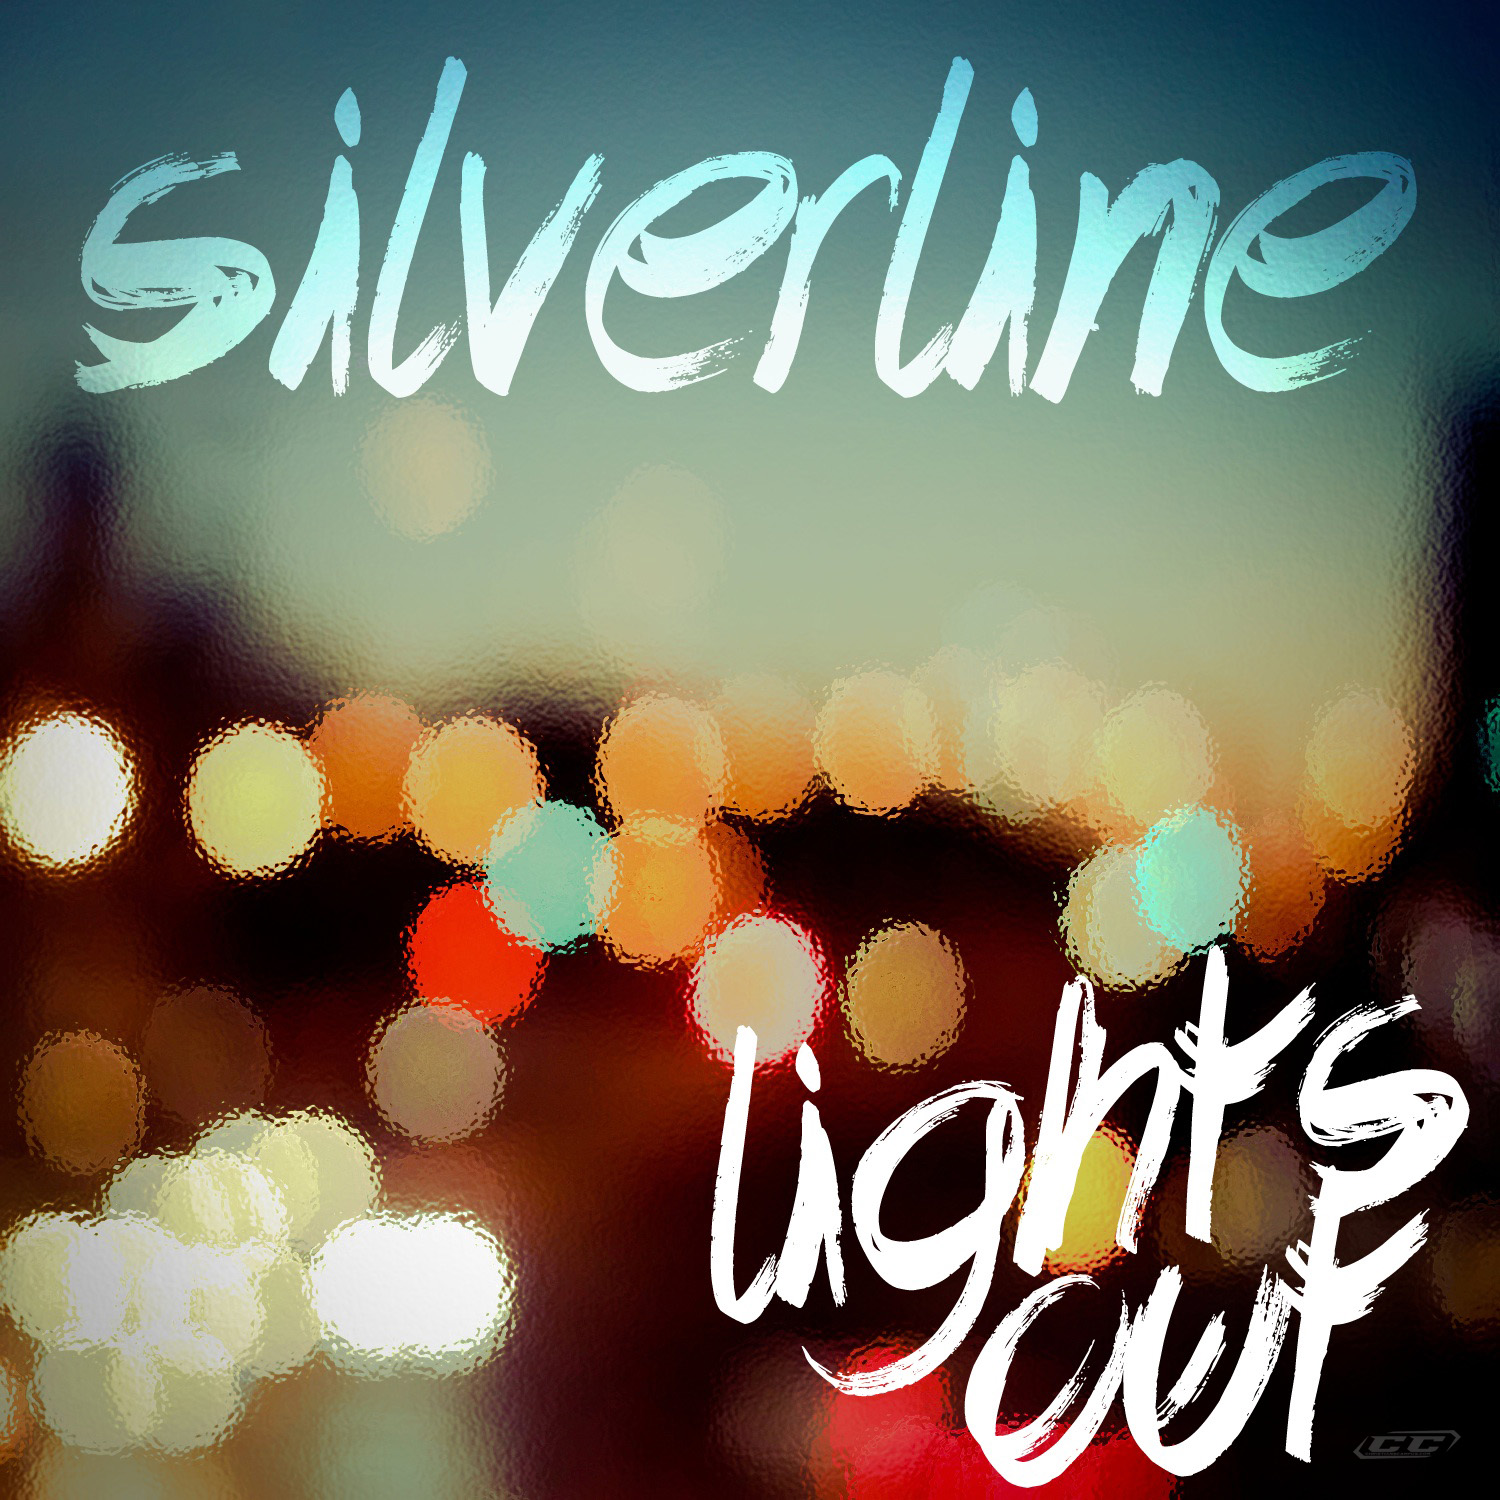 Silverline - Lights Out 2013 English Christian Album Download